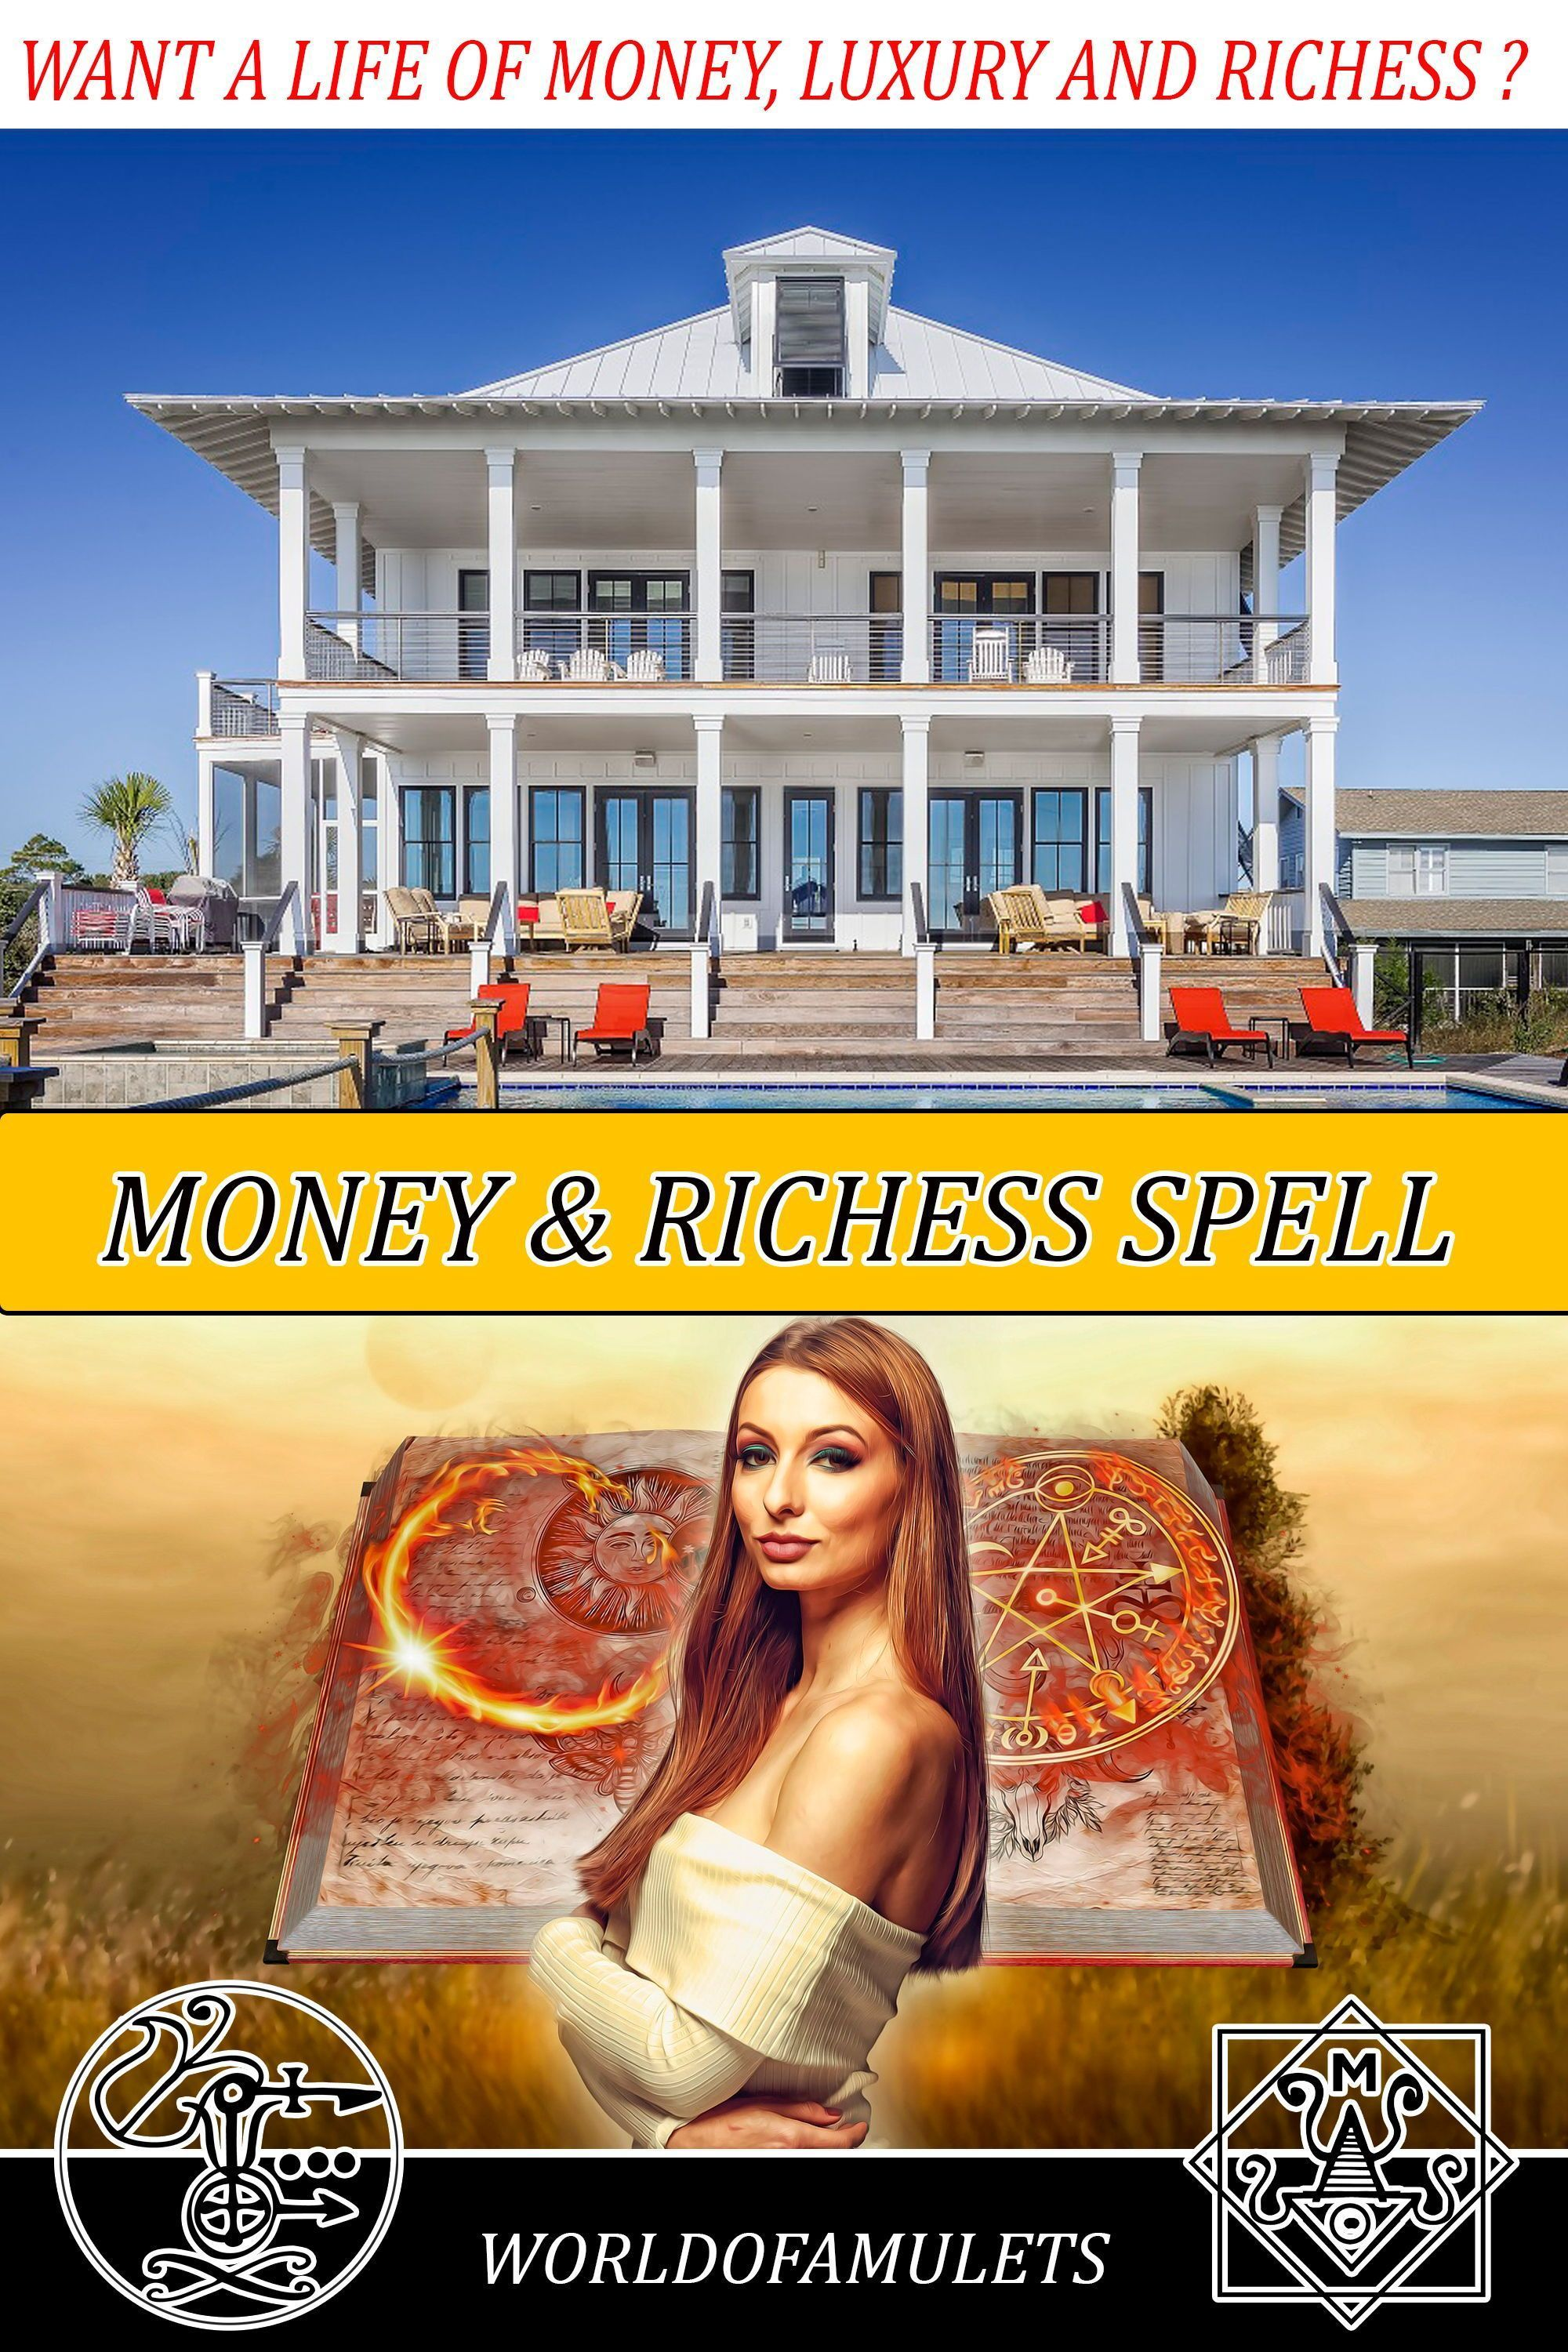 Witchcraft Wealth and Money Spell with Baal School of witchcraft and Wizardry School Beginner Witchcraft Spells #moneyspells Want a life of richess, money, wealth, expensive jewelry, luxury cars and homes and dream vacations?  Our Money Spell can make this true. Check the reviews  #money #spell #wealth #richess #moneyspells Witchcraft Wealth and Money Spell with Baal School of witchcraft and Wizardry School Beginner Witchcraft Spells #moneyspells Want a life of richess, money, wealth, expensive #moneyspells